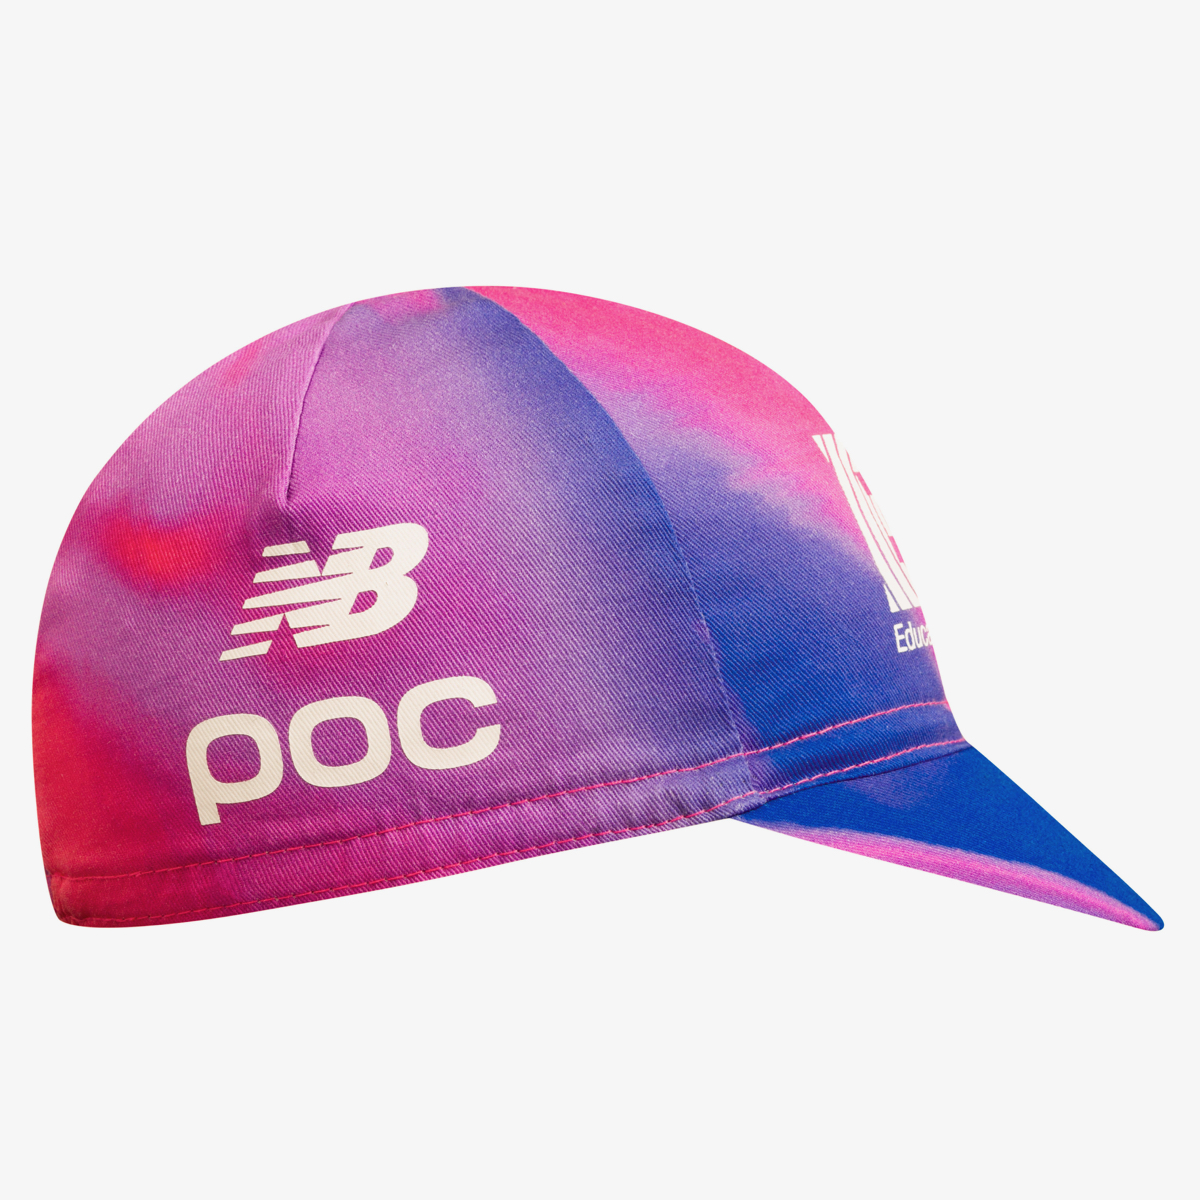 Rapha EF EDUCATION FIRST CAP